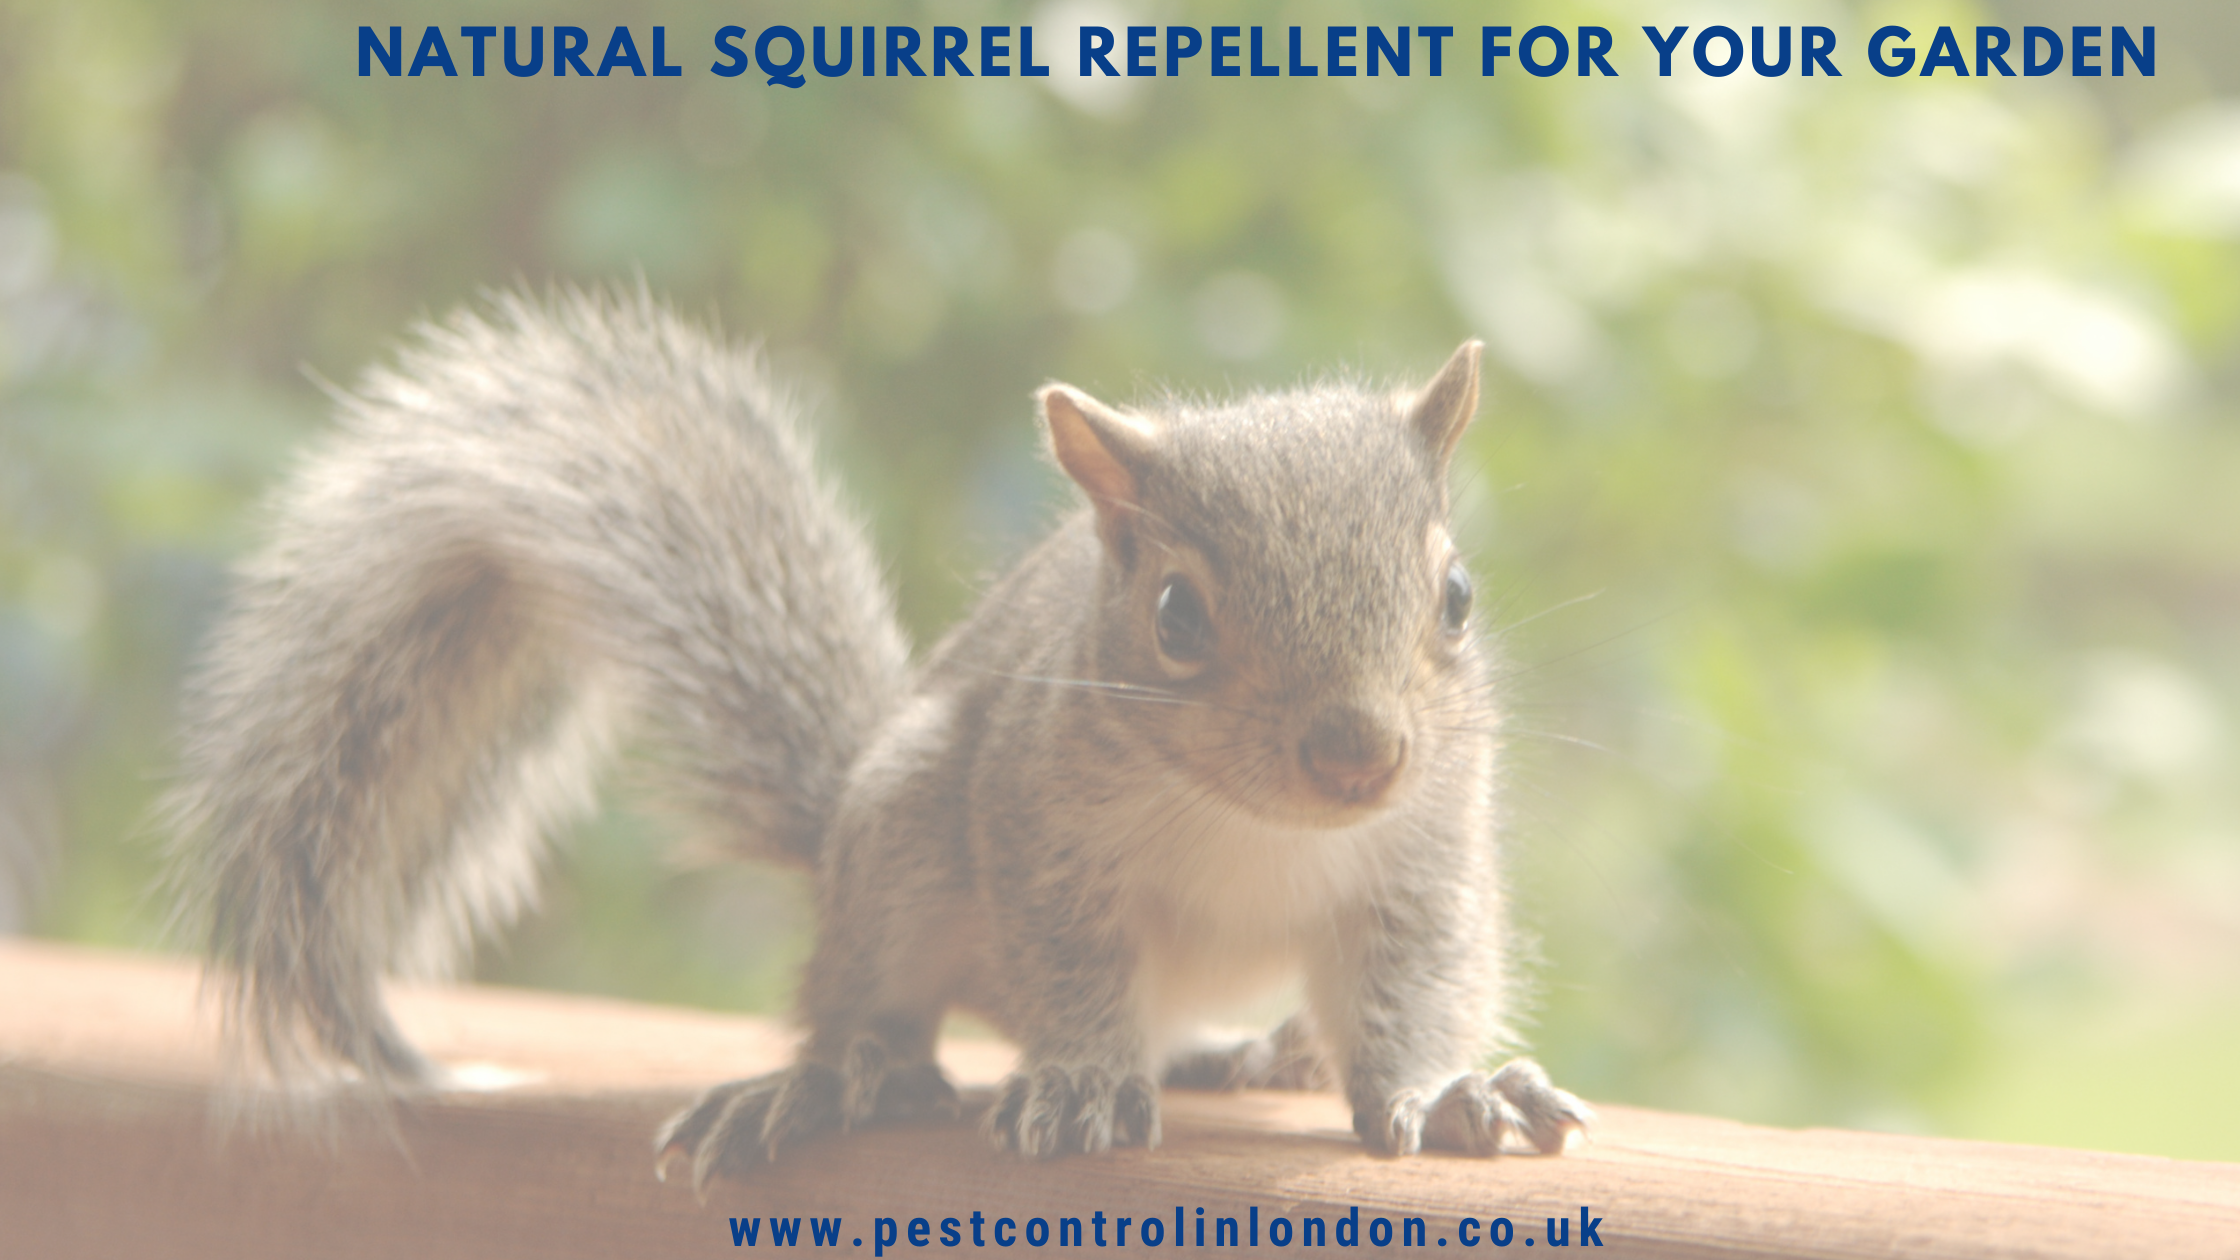 Natural squirrel repellent for your garden